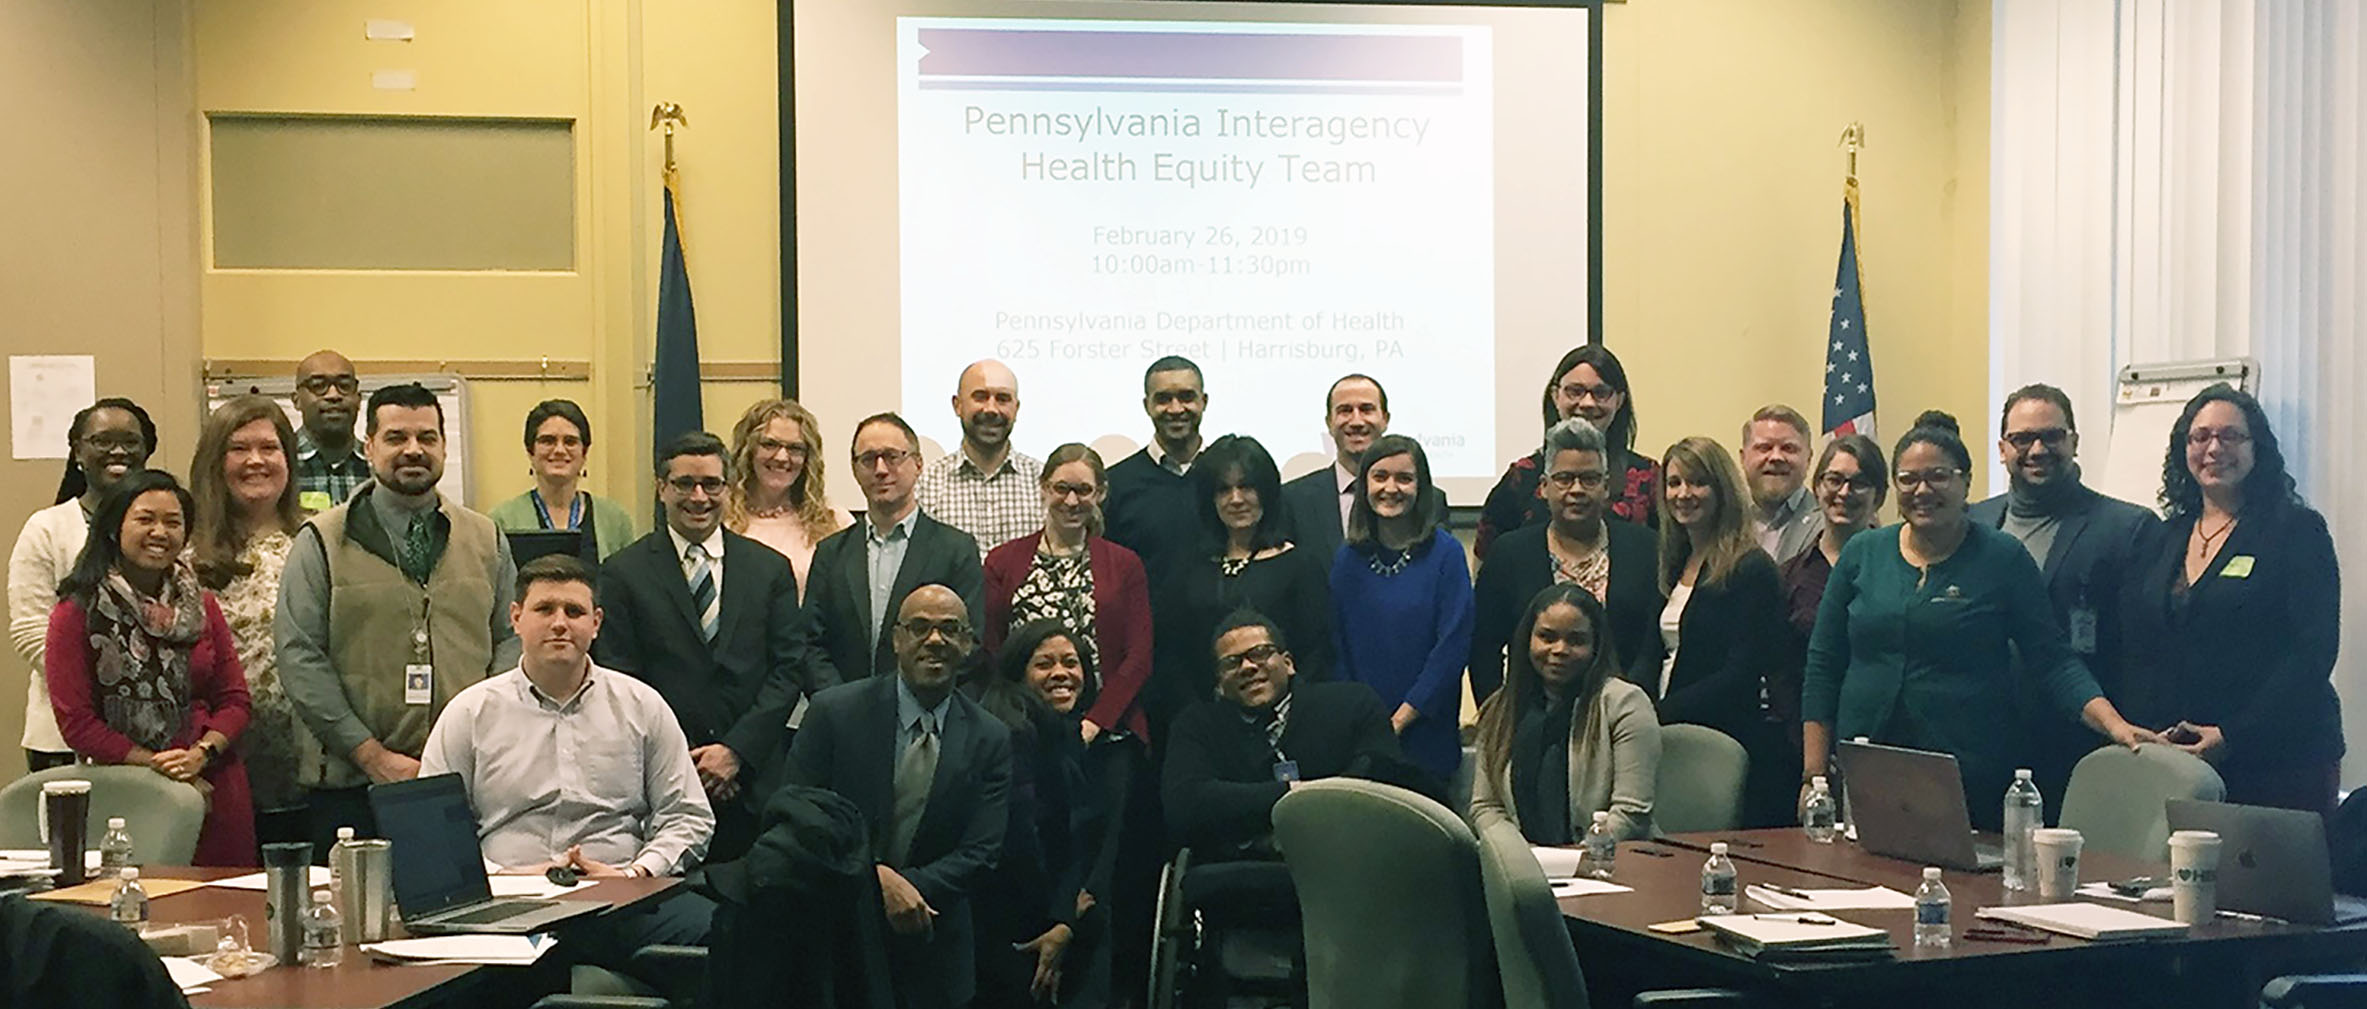 Photo of the large group of people on the Health Equity Team standing at the front of the room during a conference.